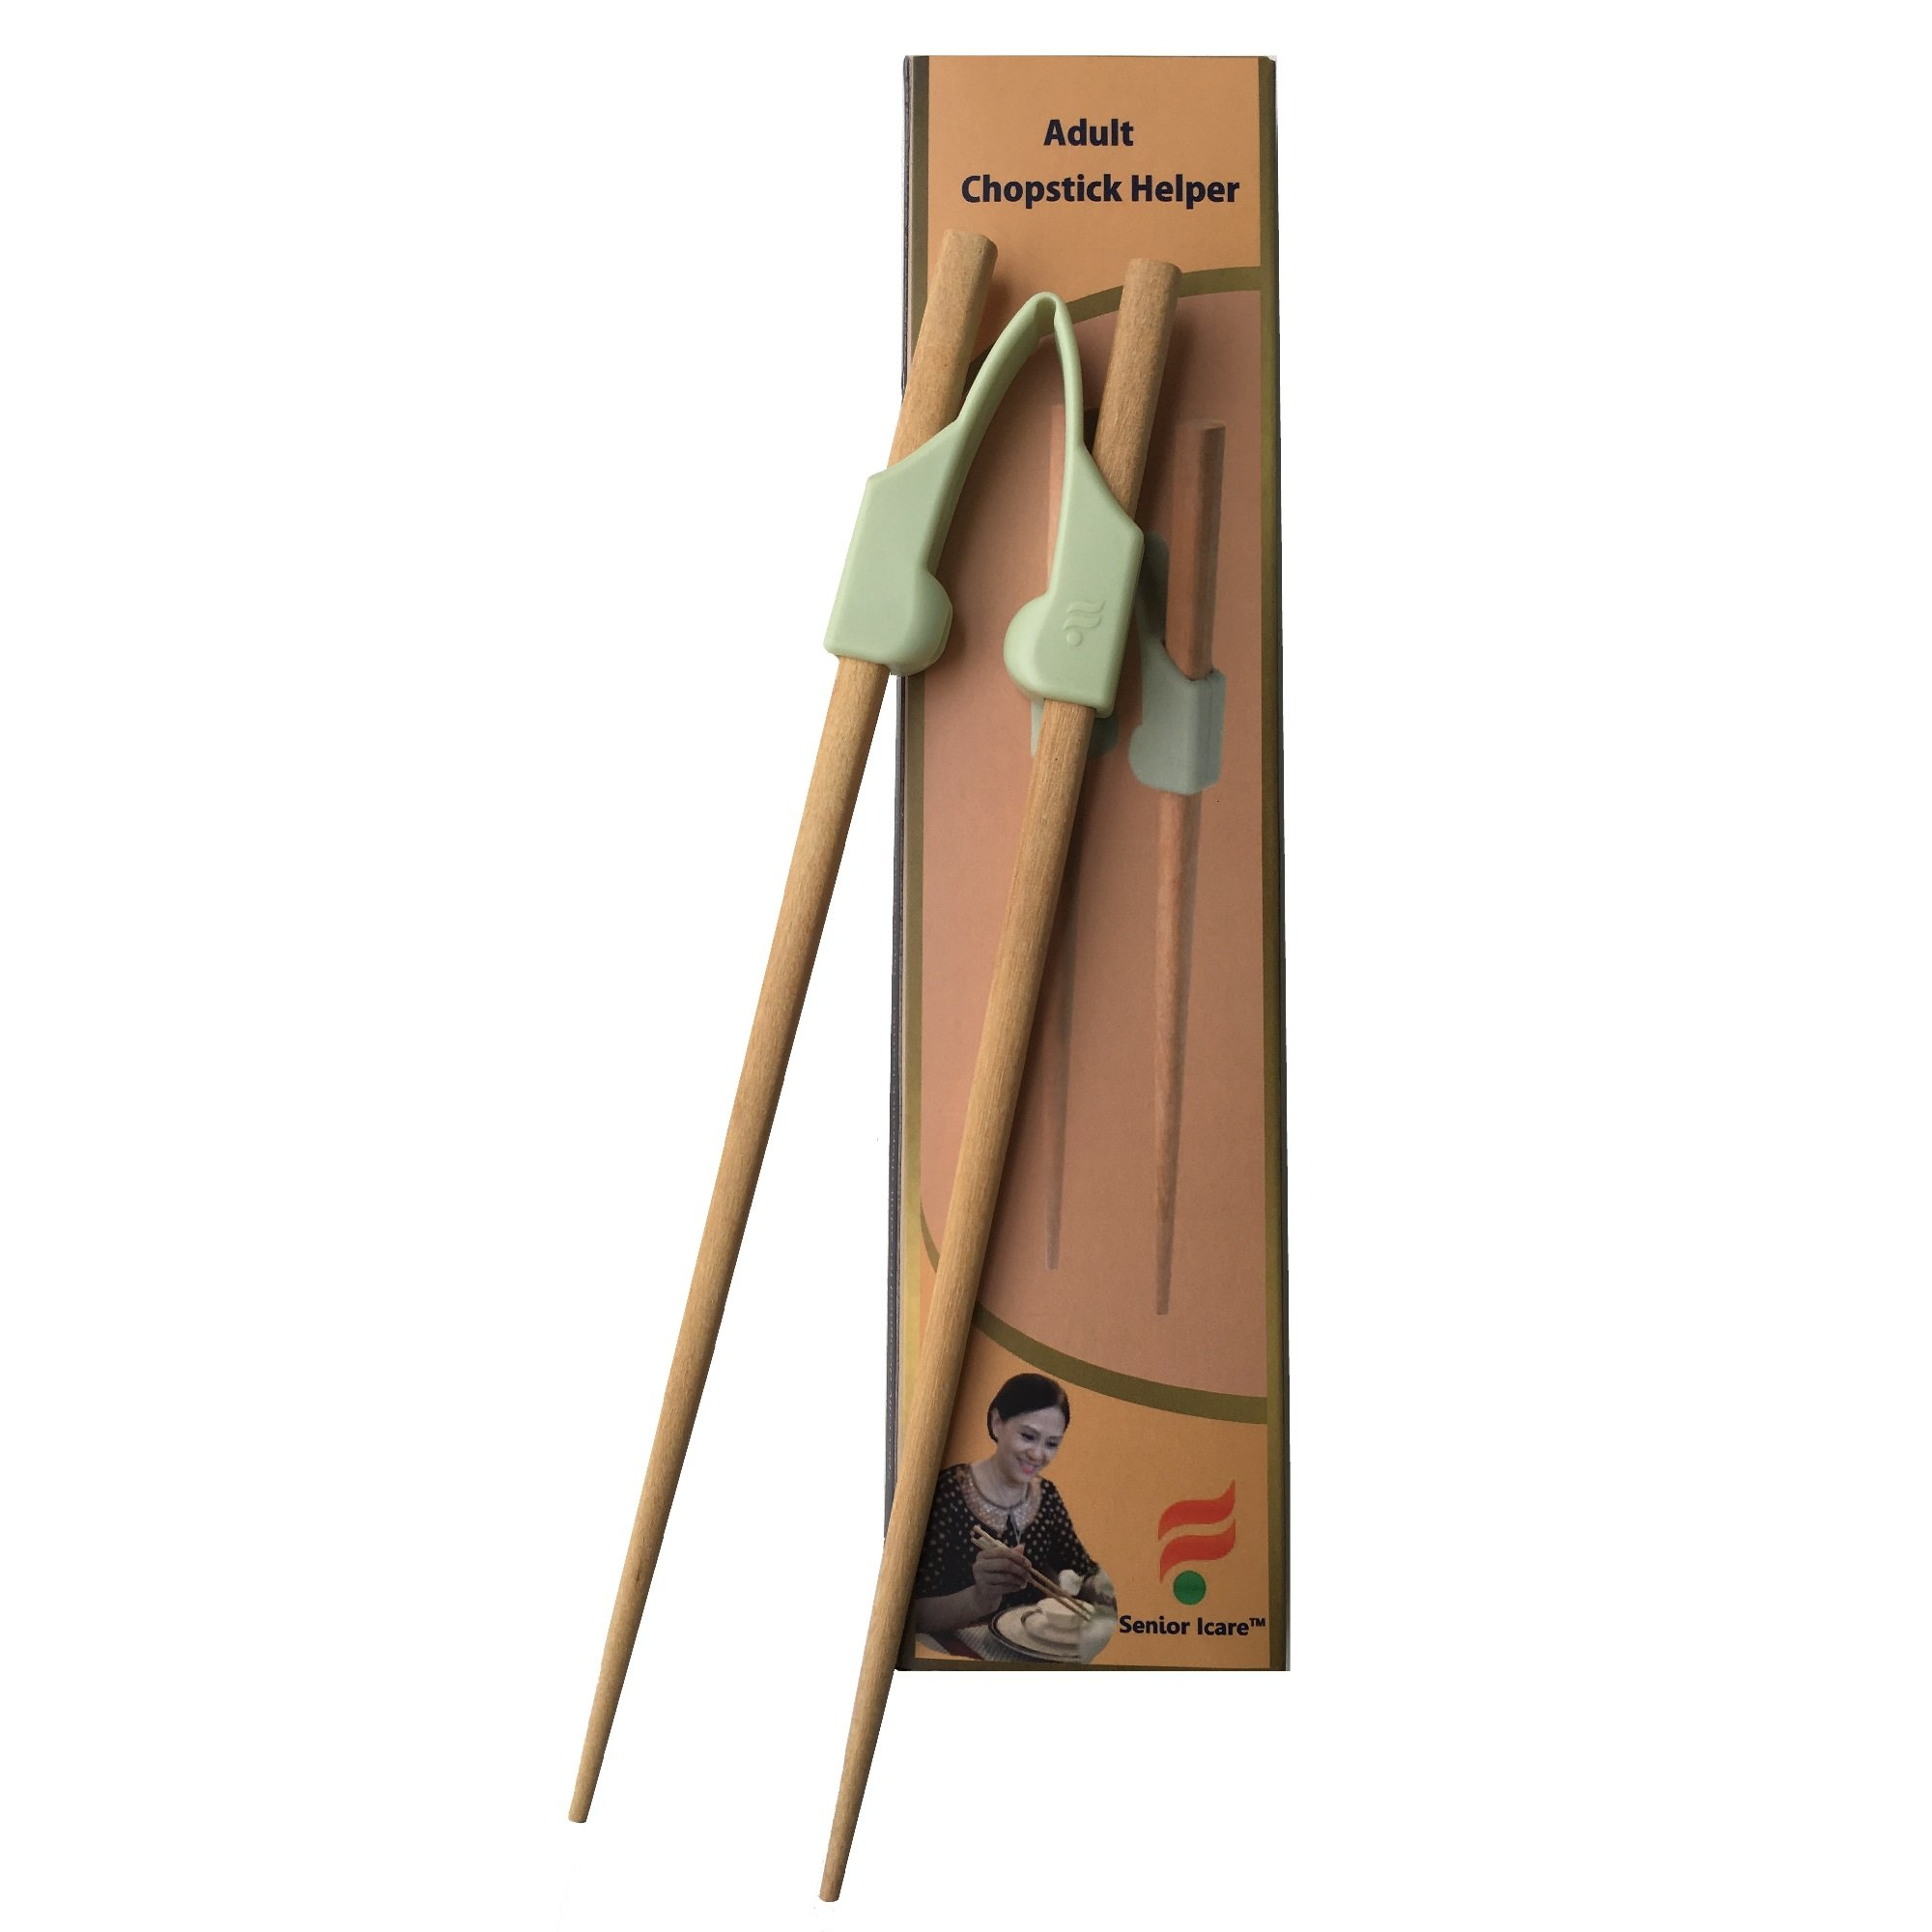 Senior ICare Adult chopstick helpers/trainers - Design for adult - BPA free POM non-toxic hard engineering plastic helper - left or right hand - Non-slippery replaceable wood chopstick